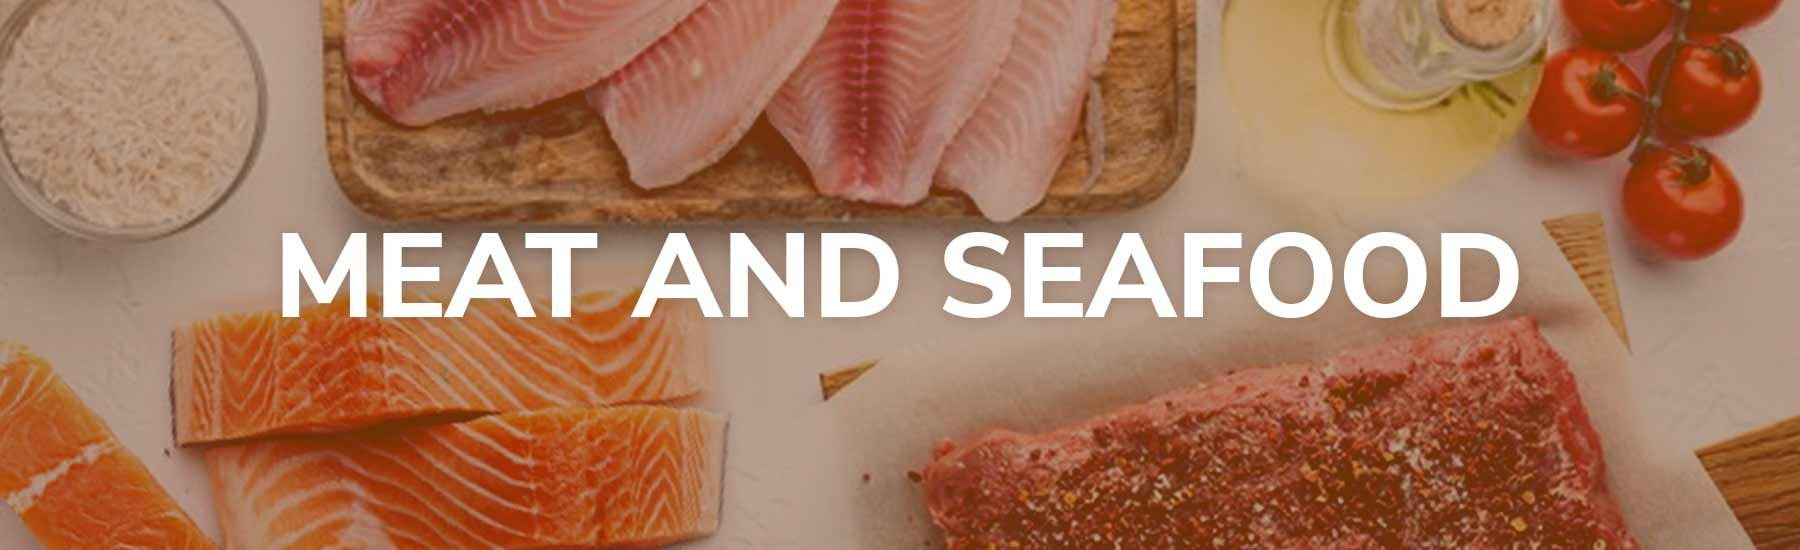 Gan Teck Kar Foods Meat and Seafood Products Supplier